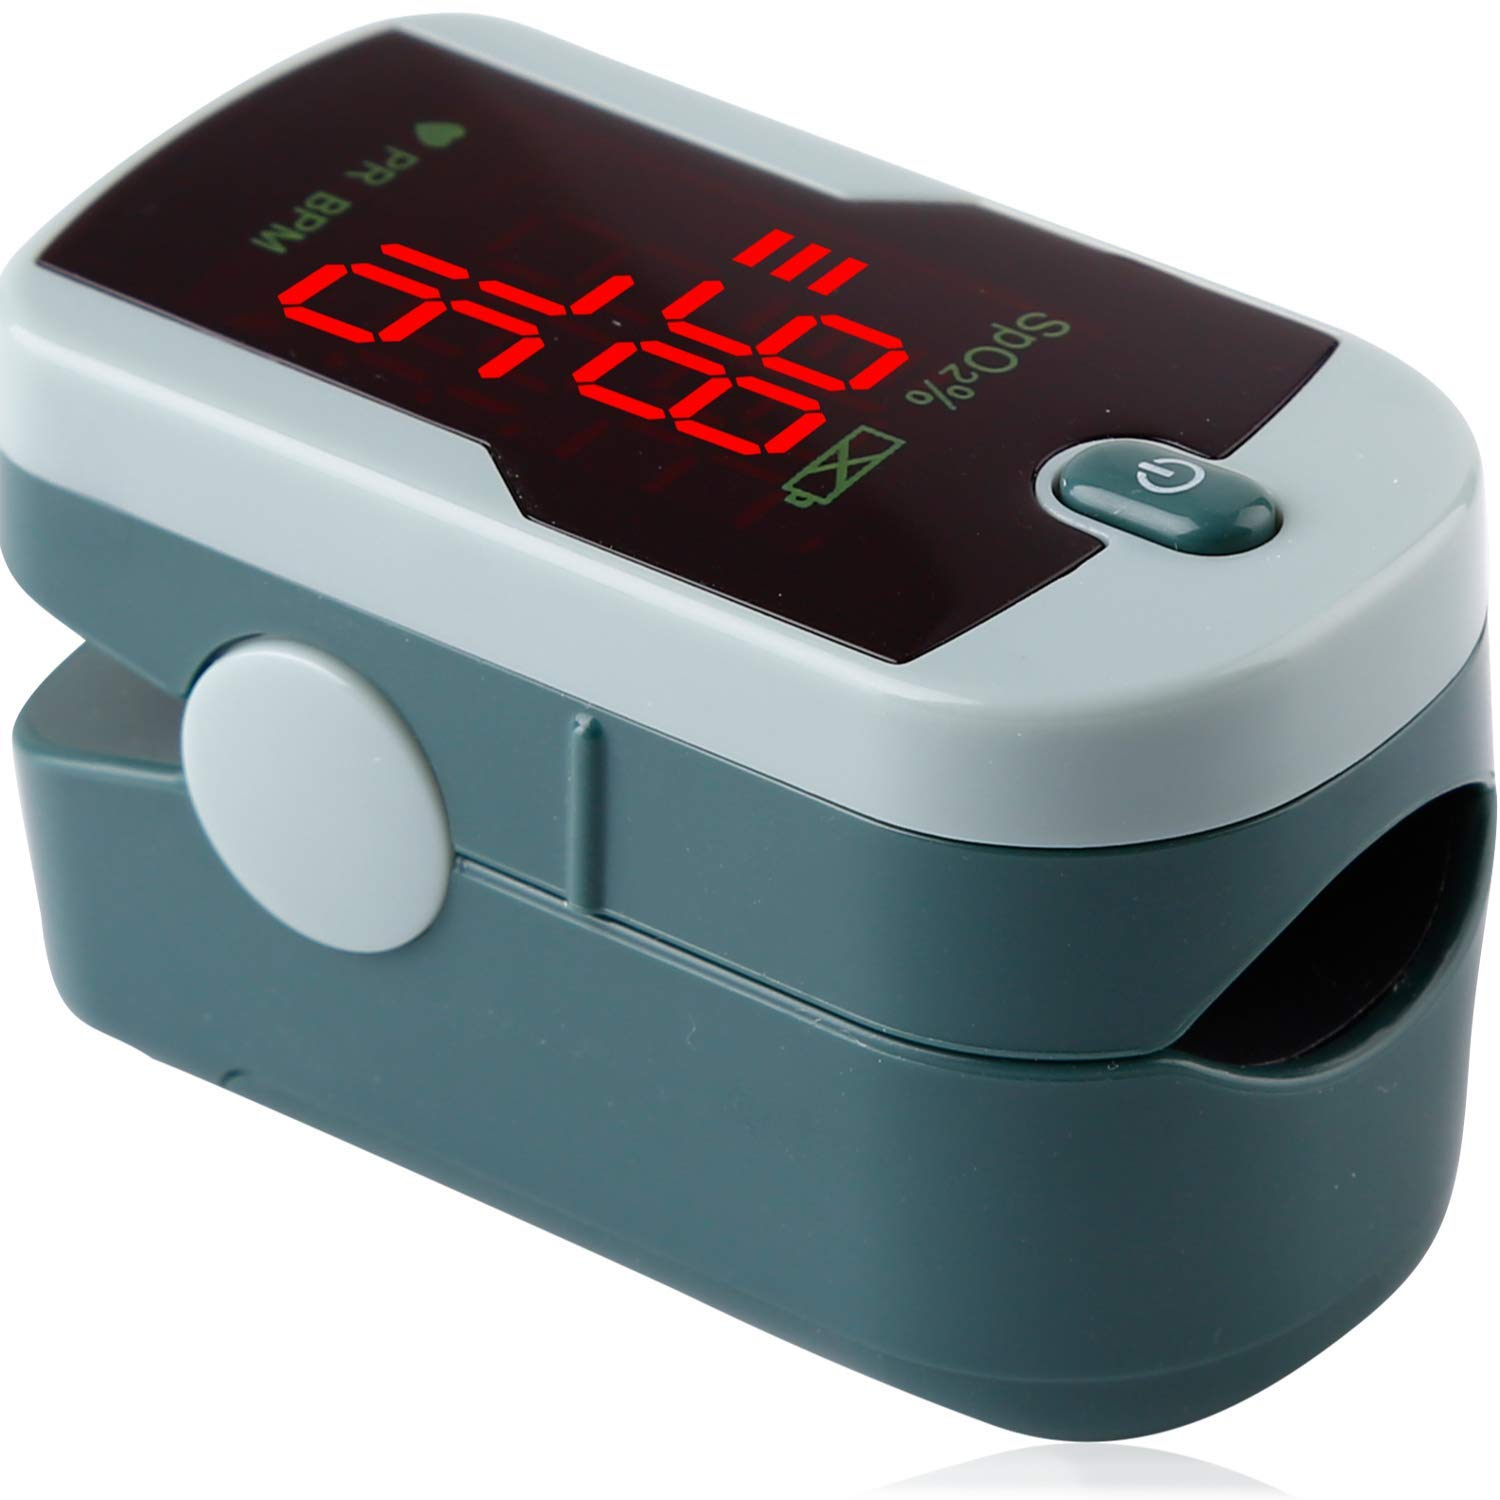 ChoiceMMed Grey Finger Pulse Oximeter - Blood Oxygen Saturation Monitor Great as SPO2 Pulse Oximeter - Portable Oxygen Sensor with Included Batteries - O2 Saturation Monitor by ChoiceMMed